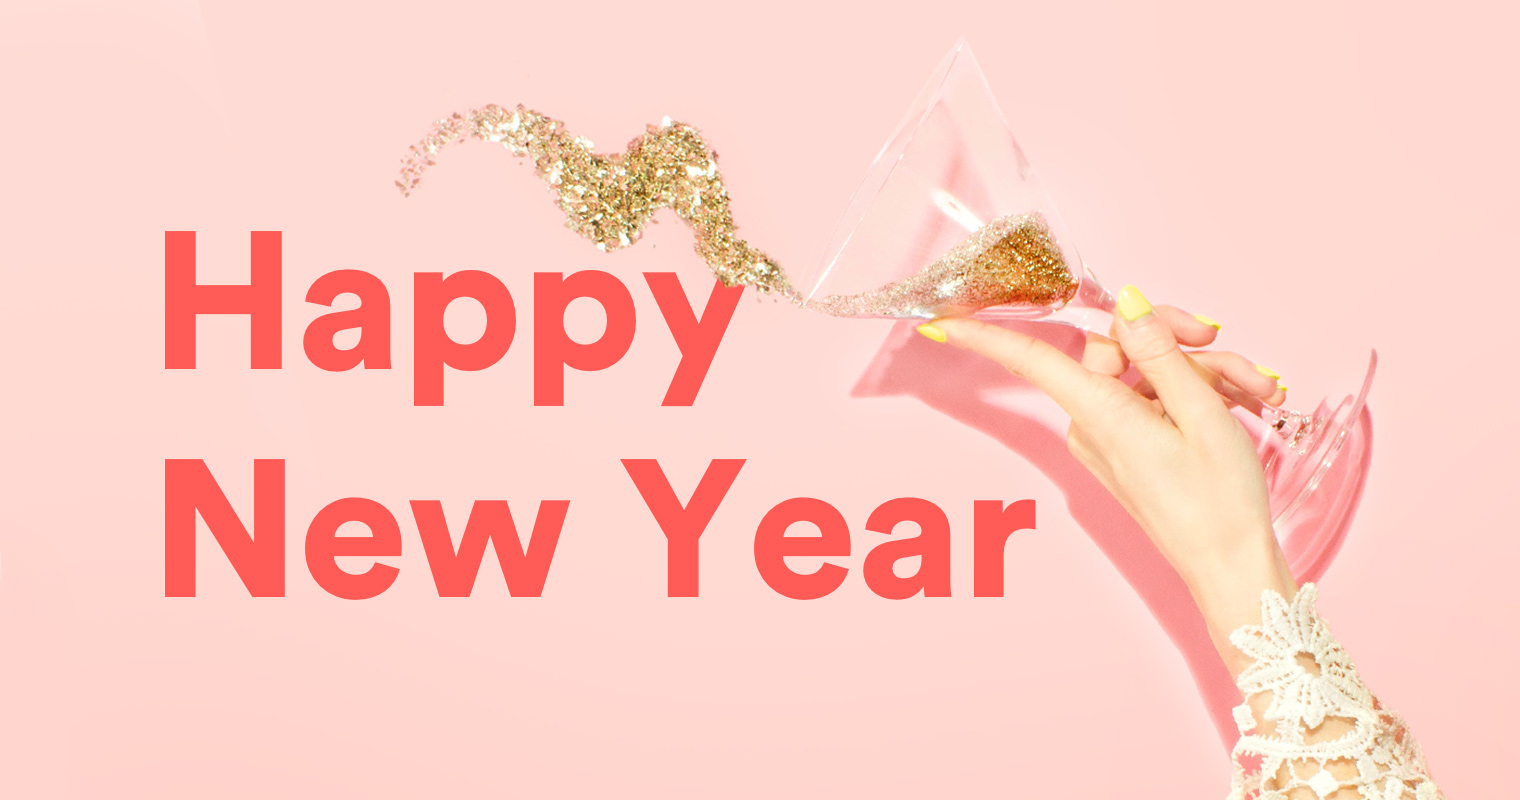 happy new year new year s or new years which is correct grammarly happy new year new year s or new